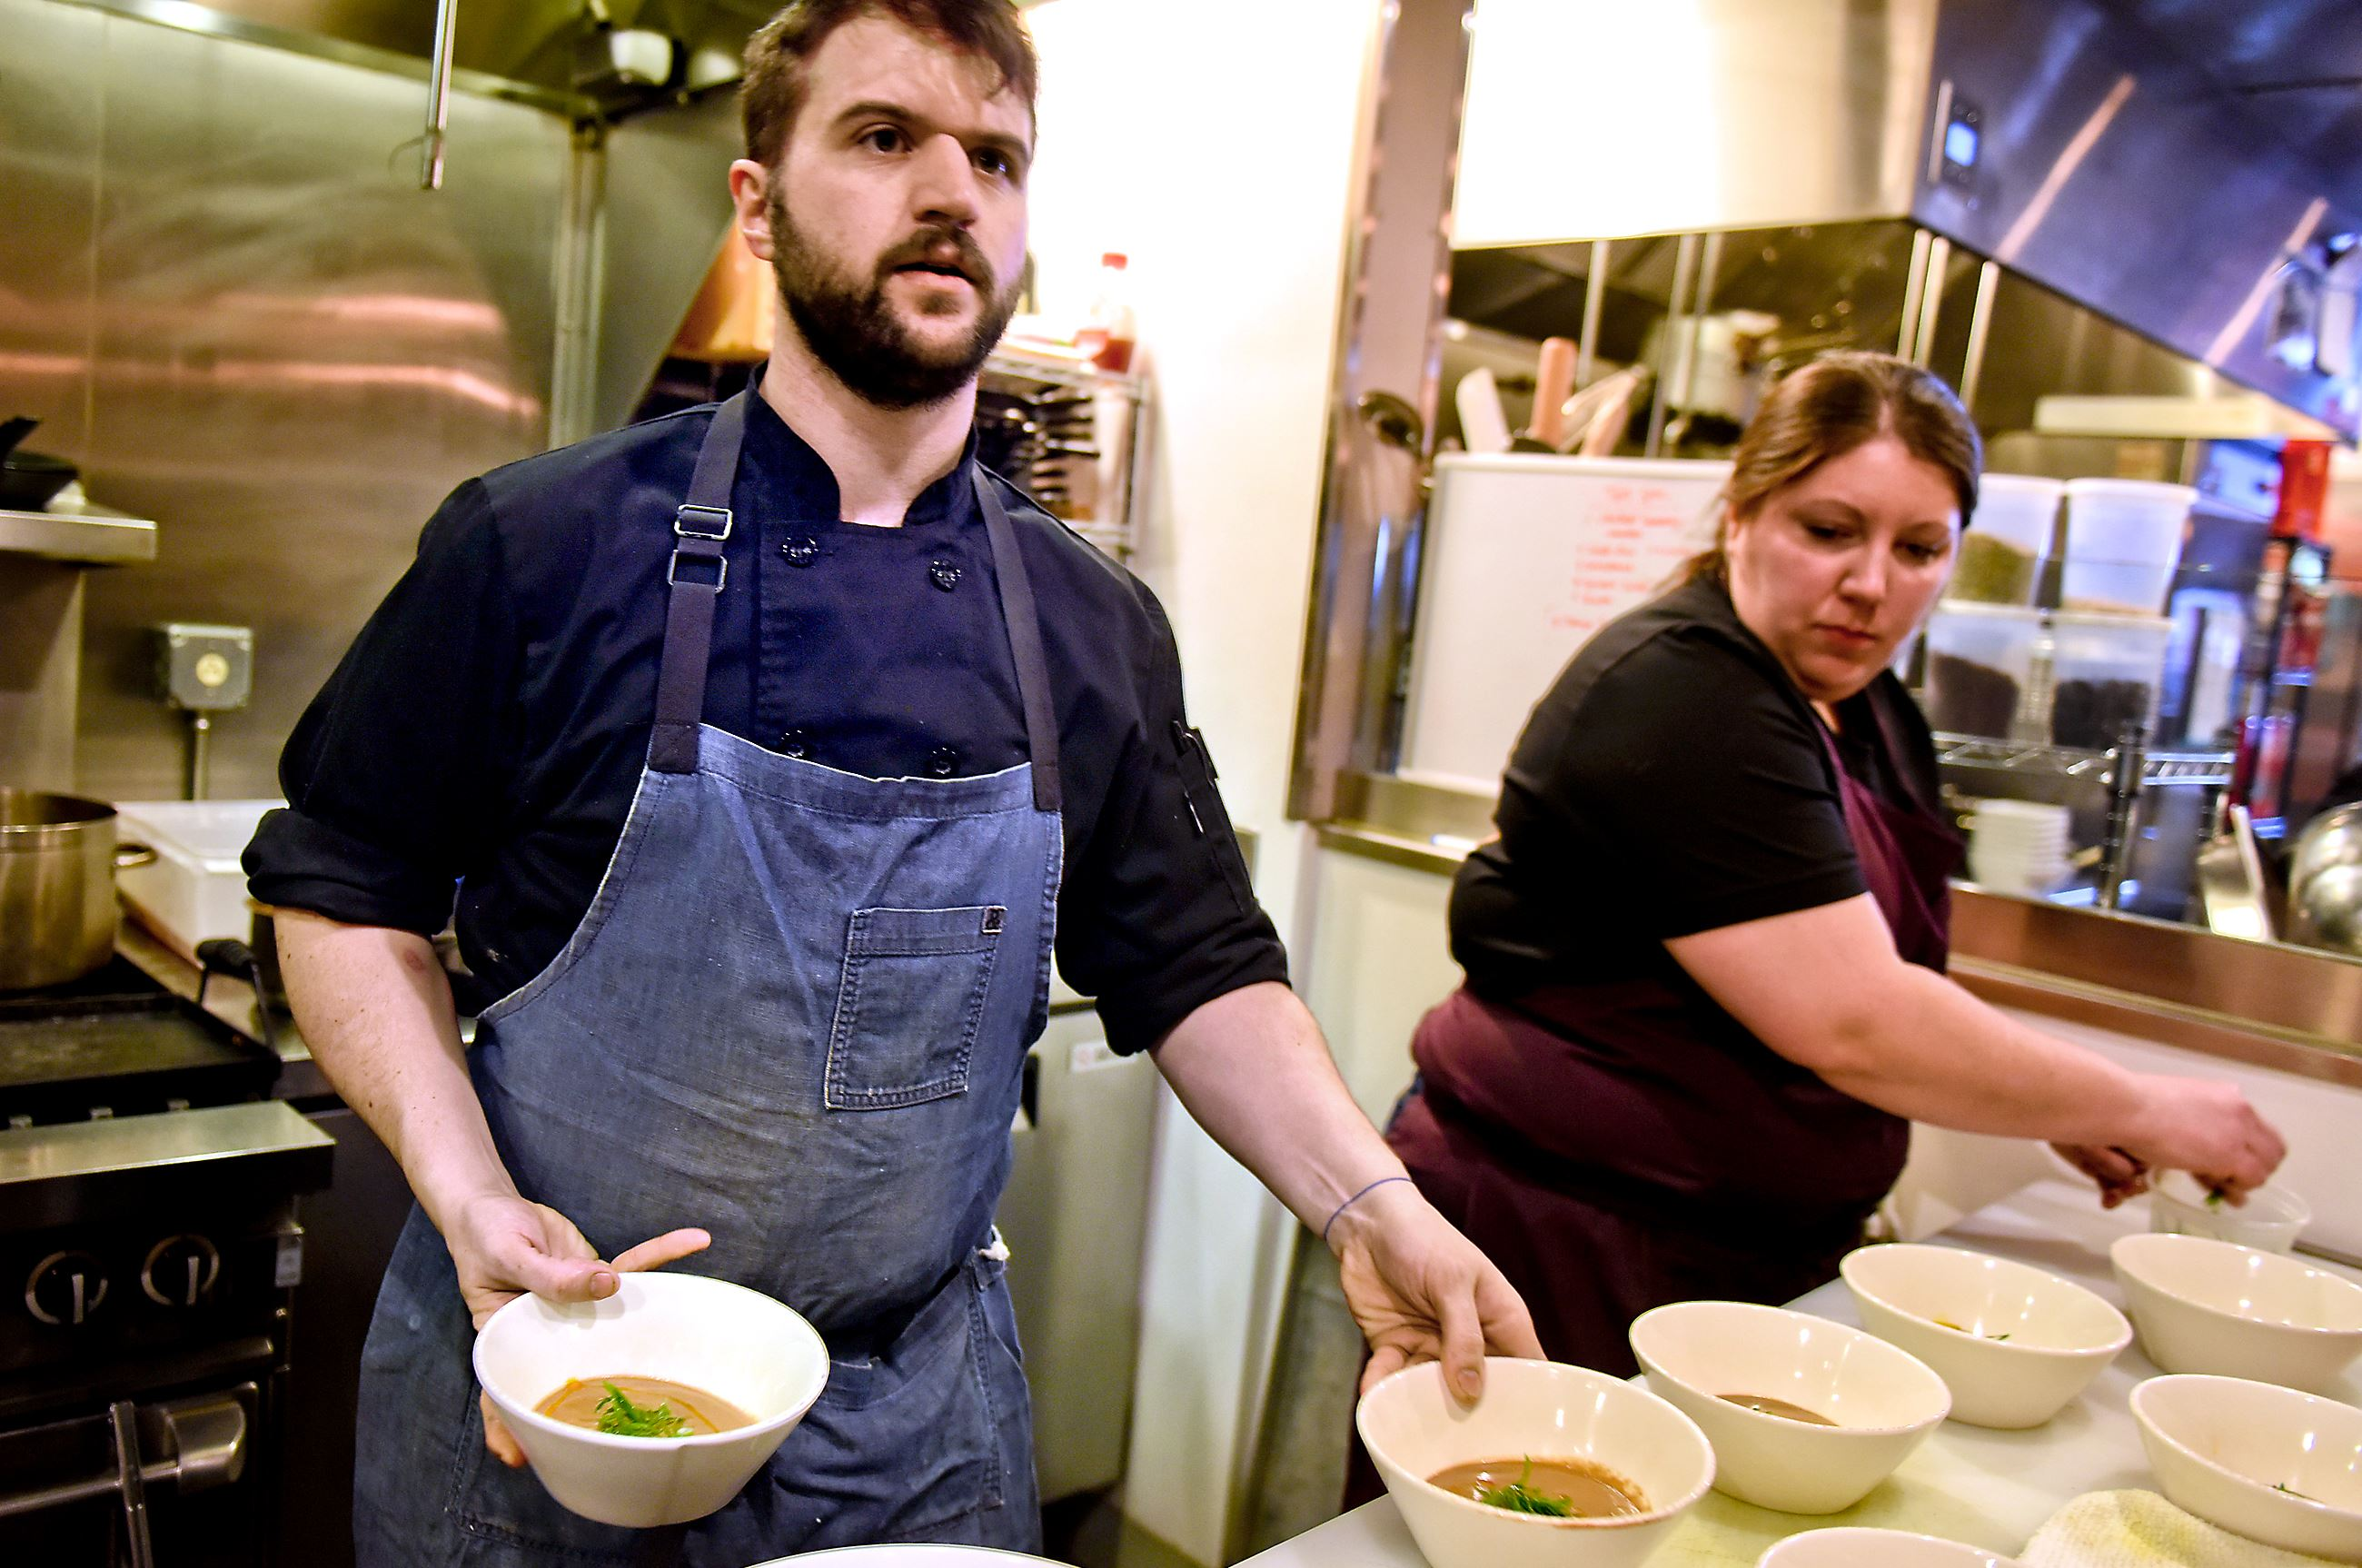 20170213smCookOff005-3 Chef Jesse Barlass, with help from Marisa Cantelli, makes final preparations during a cook off at Smallman Galley in the Strip District on Monday. Mr. Barlass was one of eight candidates auditioning for one of four openings at the restaurant incubator.